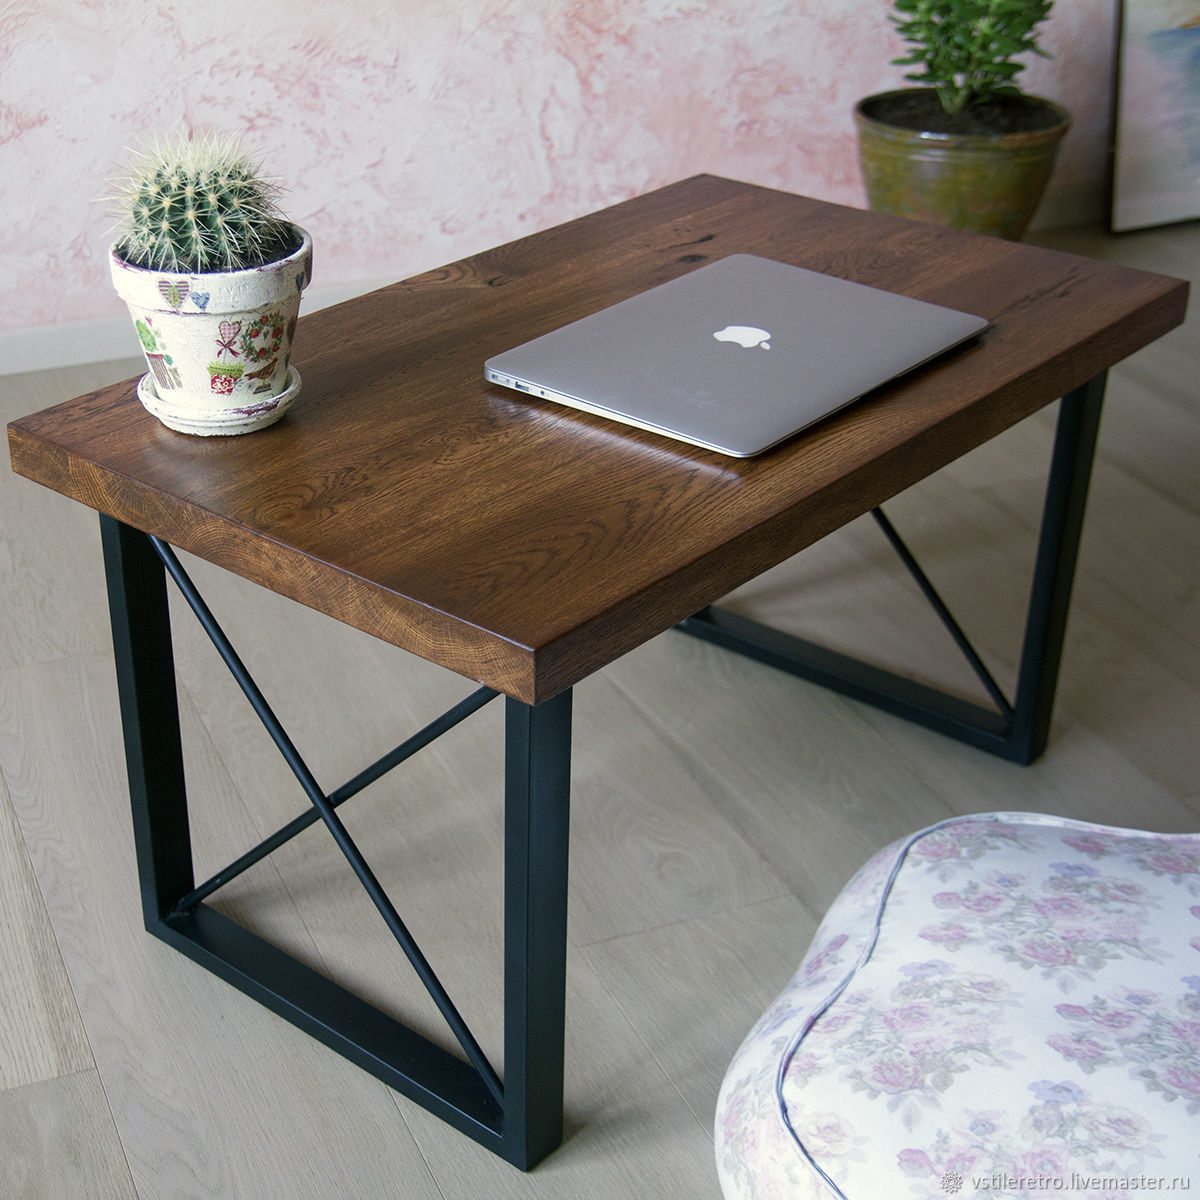 Table made of solid oak and metal in loft style, Tables, Moscow,  Фото №1